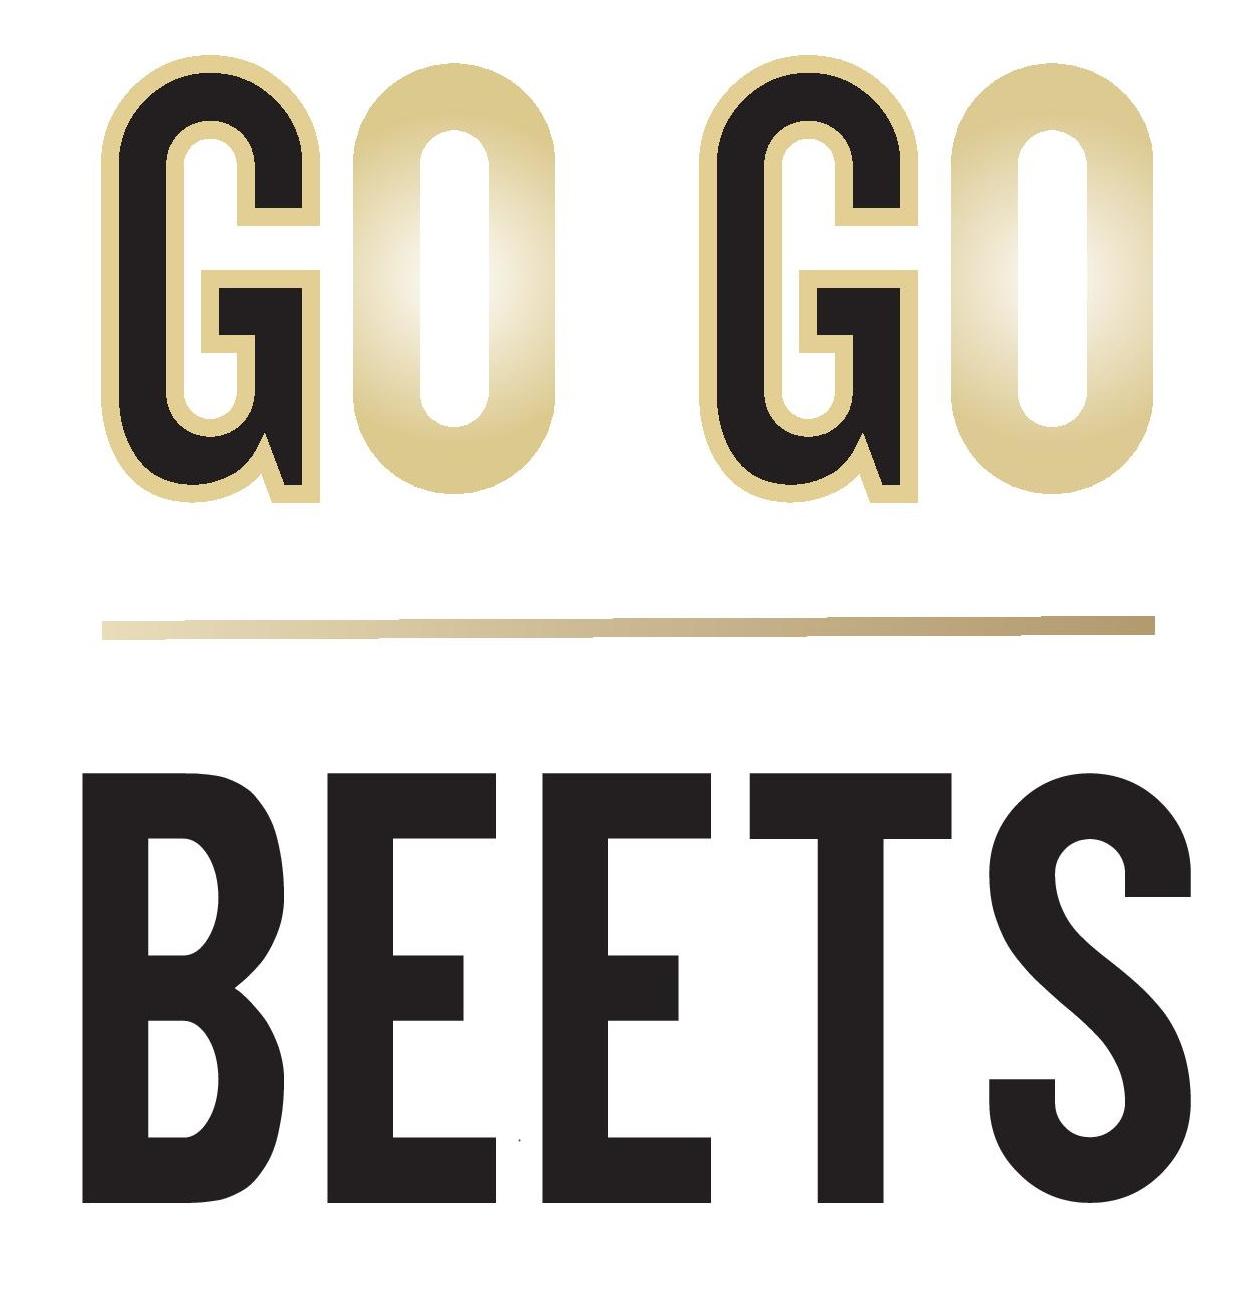 Go Go Beets